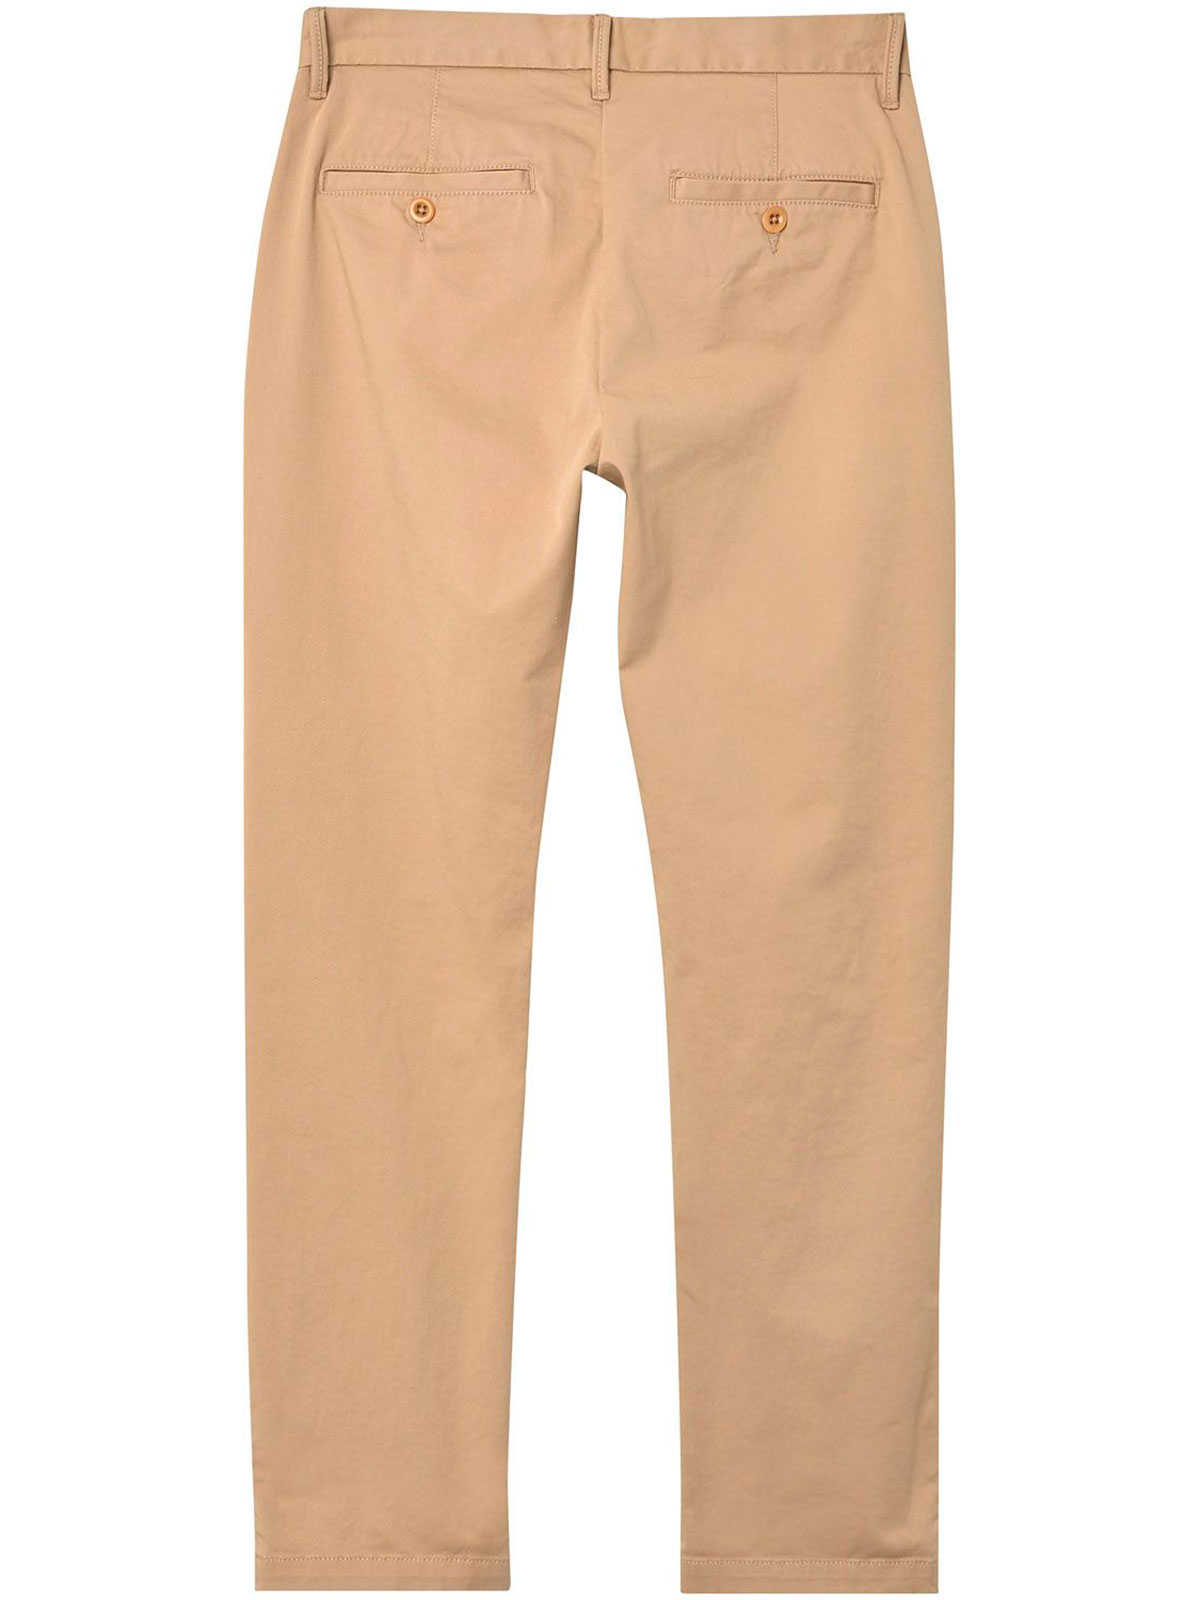 Womens Classic Cropped Chinos Trousers GANT bqpvdg